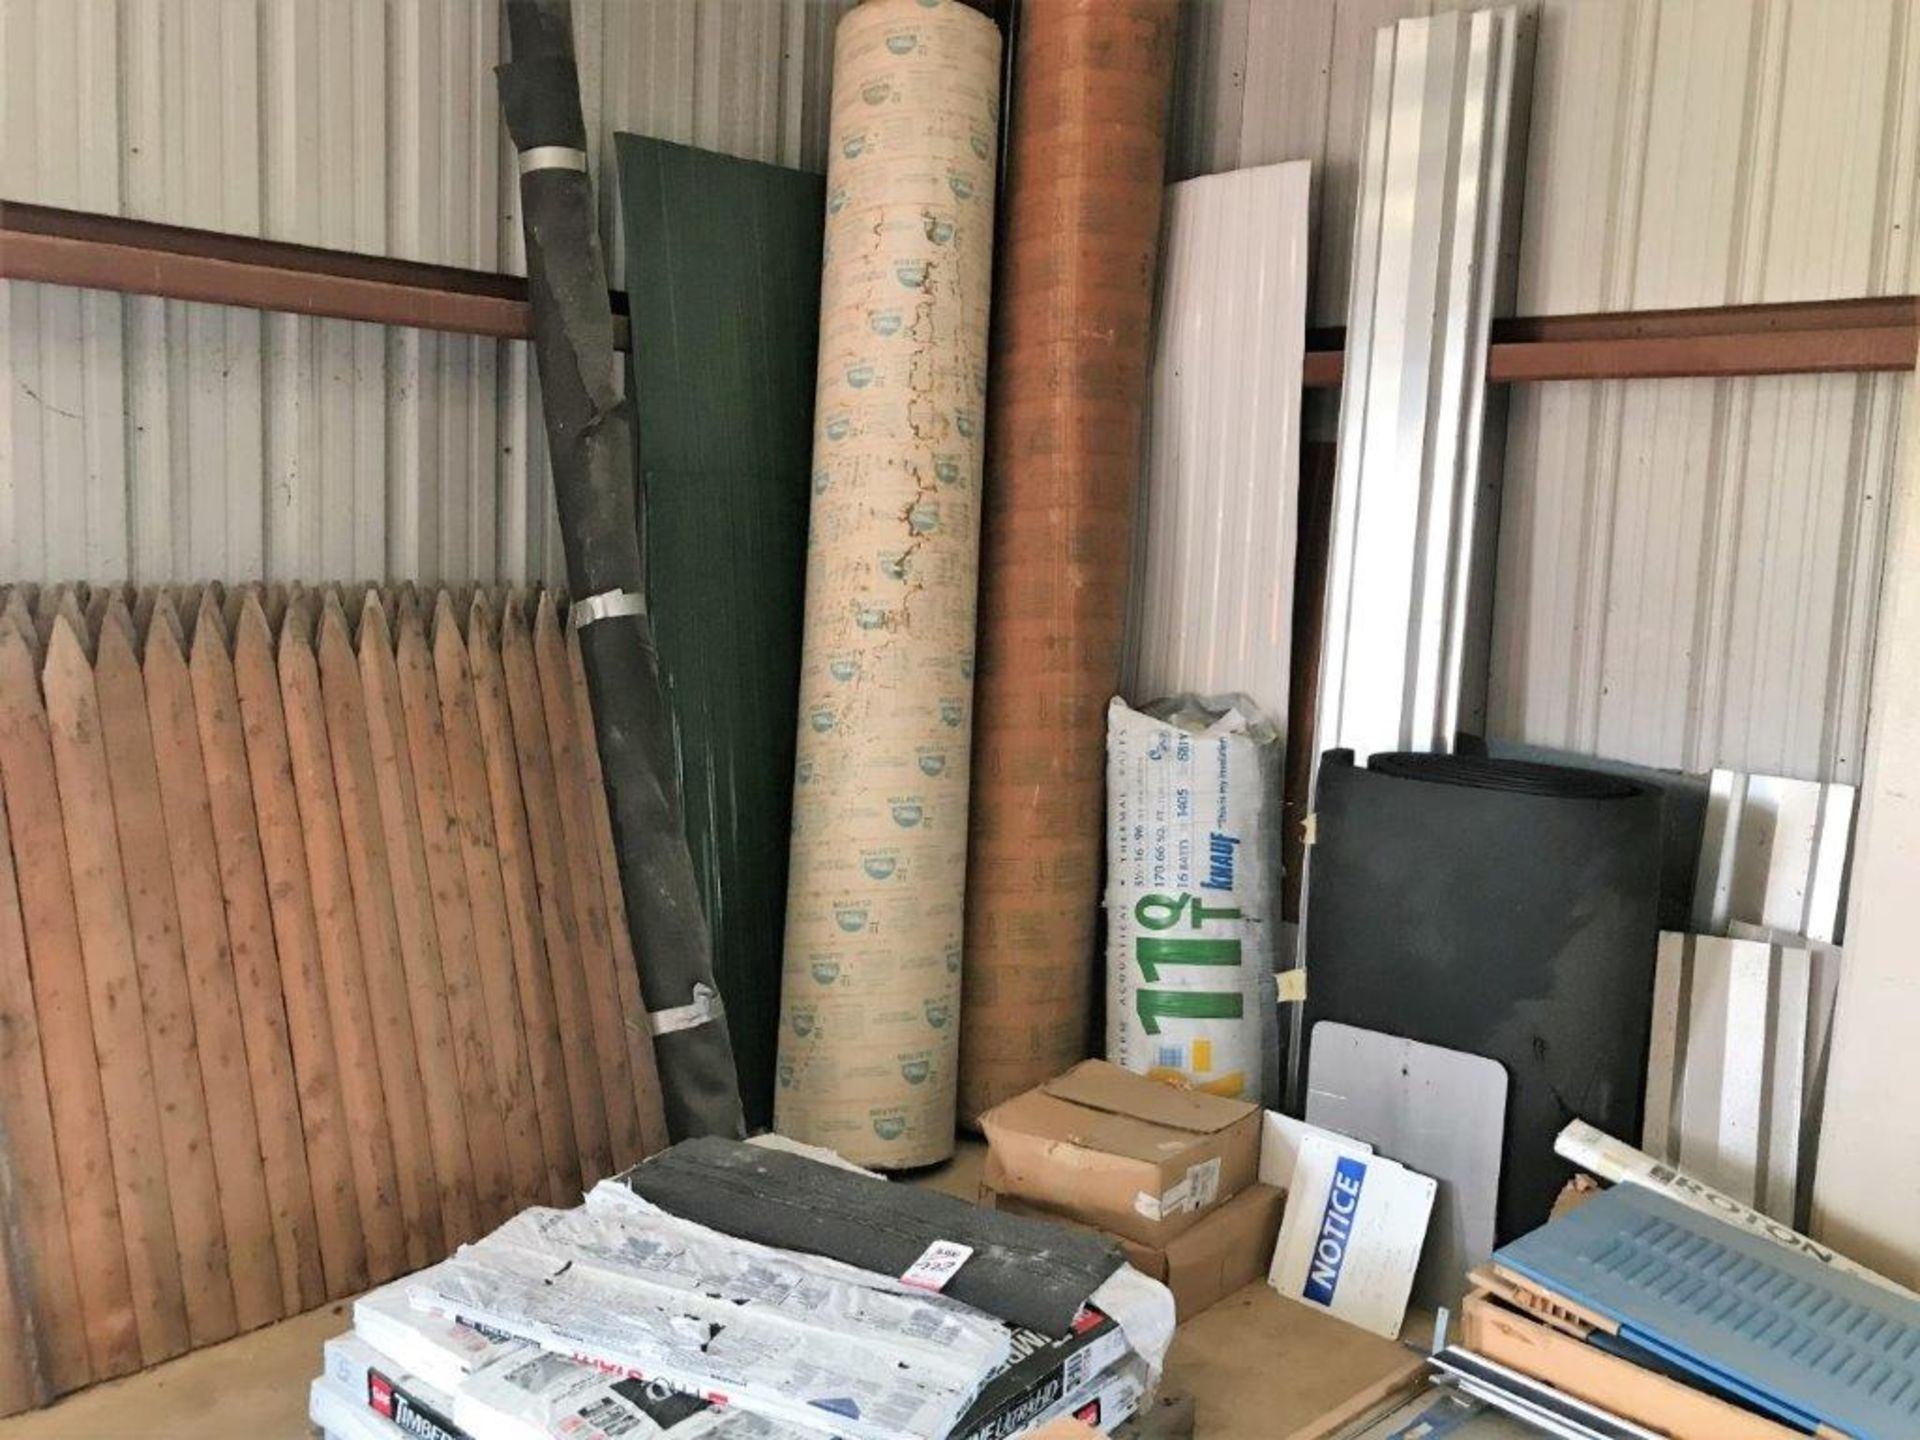 Lot 722 - LOT - ASSORTED BUILDING MATERIALS AND TOOLS TO INCLUDE SHINGLES, ALUMINUM SIDING, WOOD FENCE,